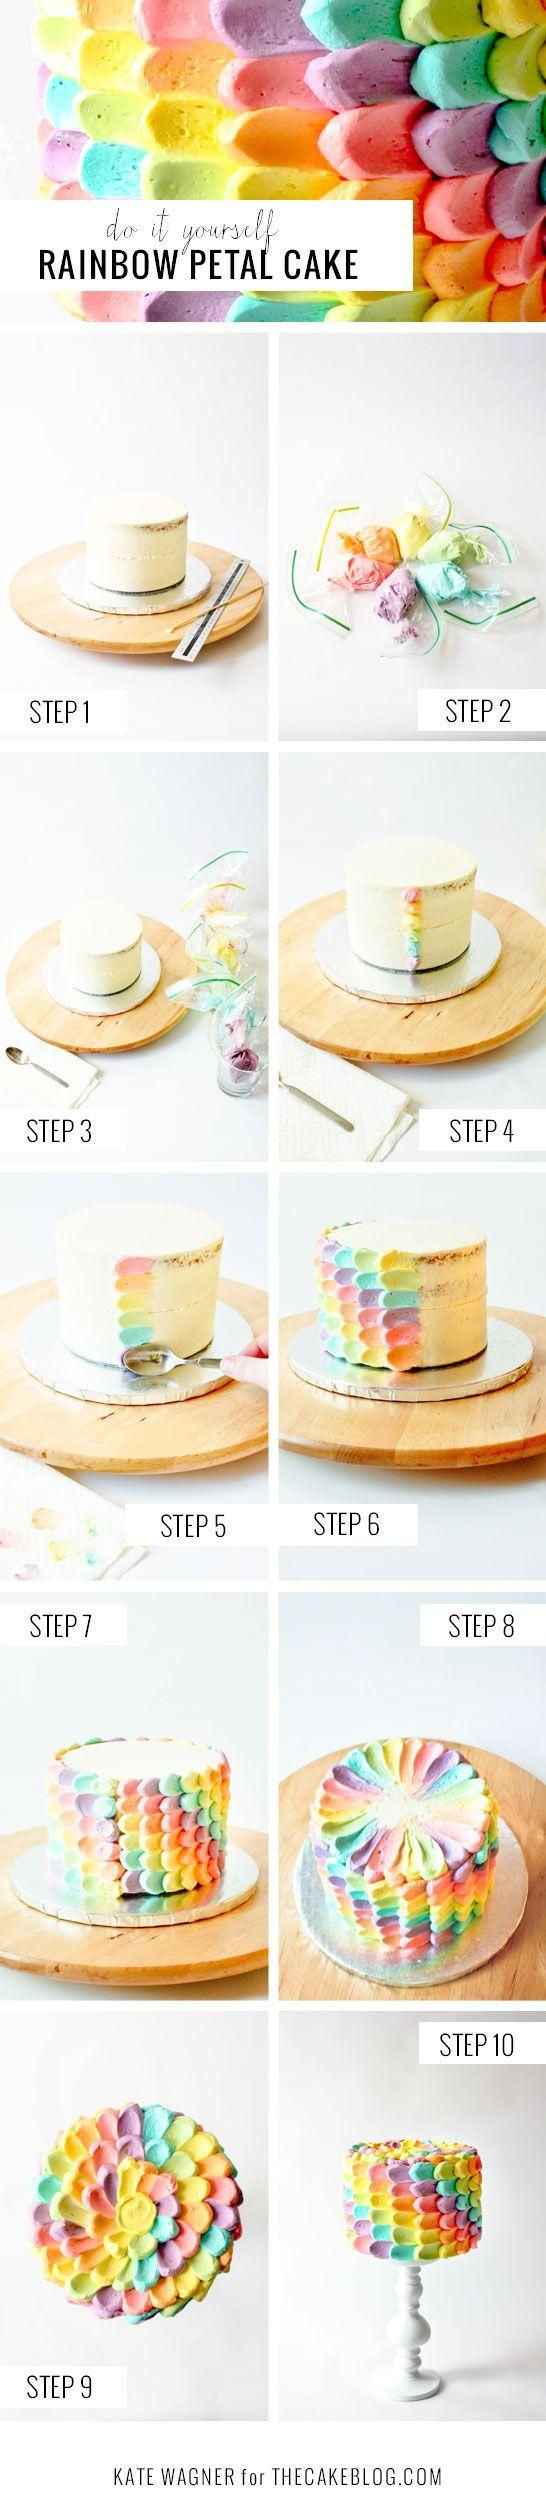 DIY Petal Cake. I would do this with different shades of one color or just two or three coordinating colors instead of rainbow though.